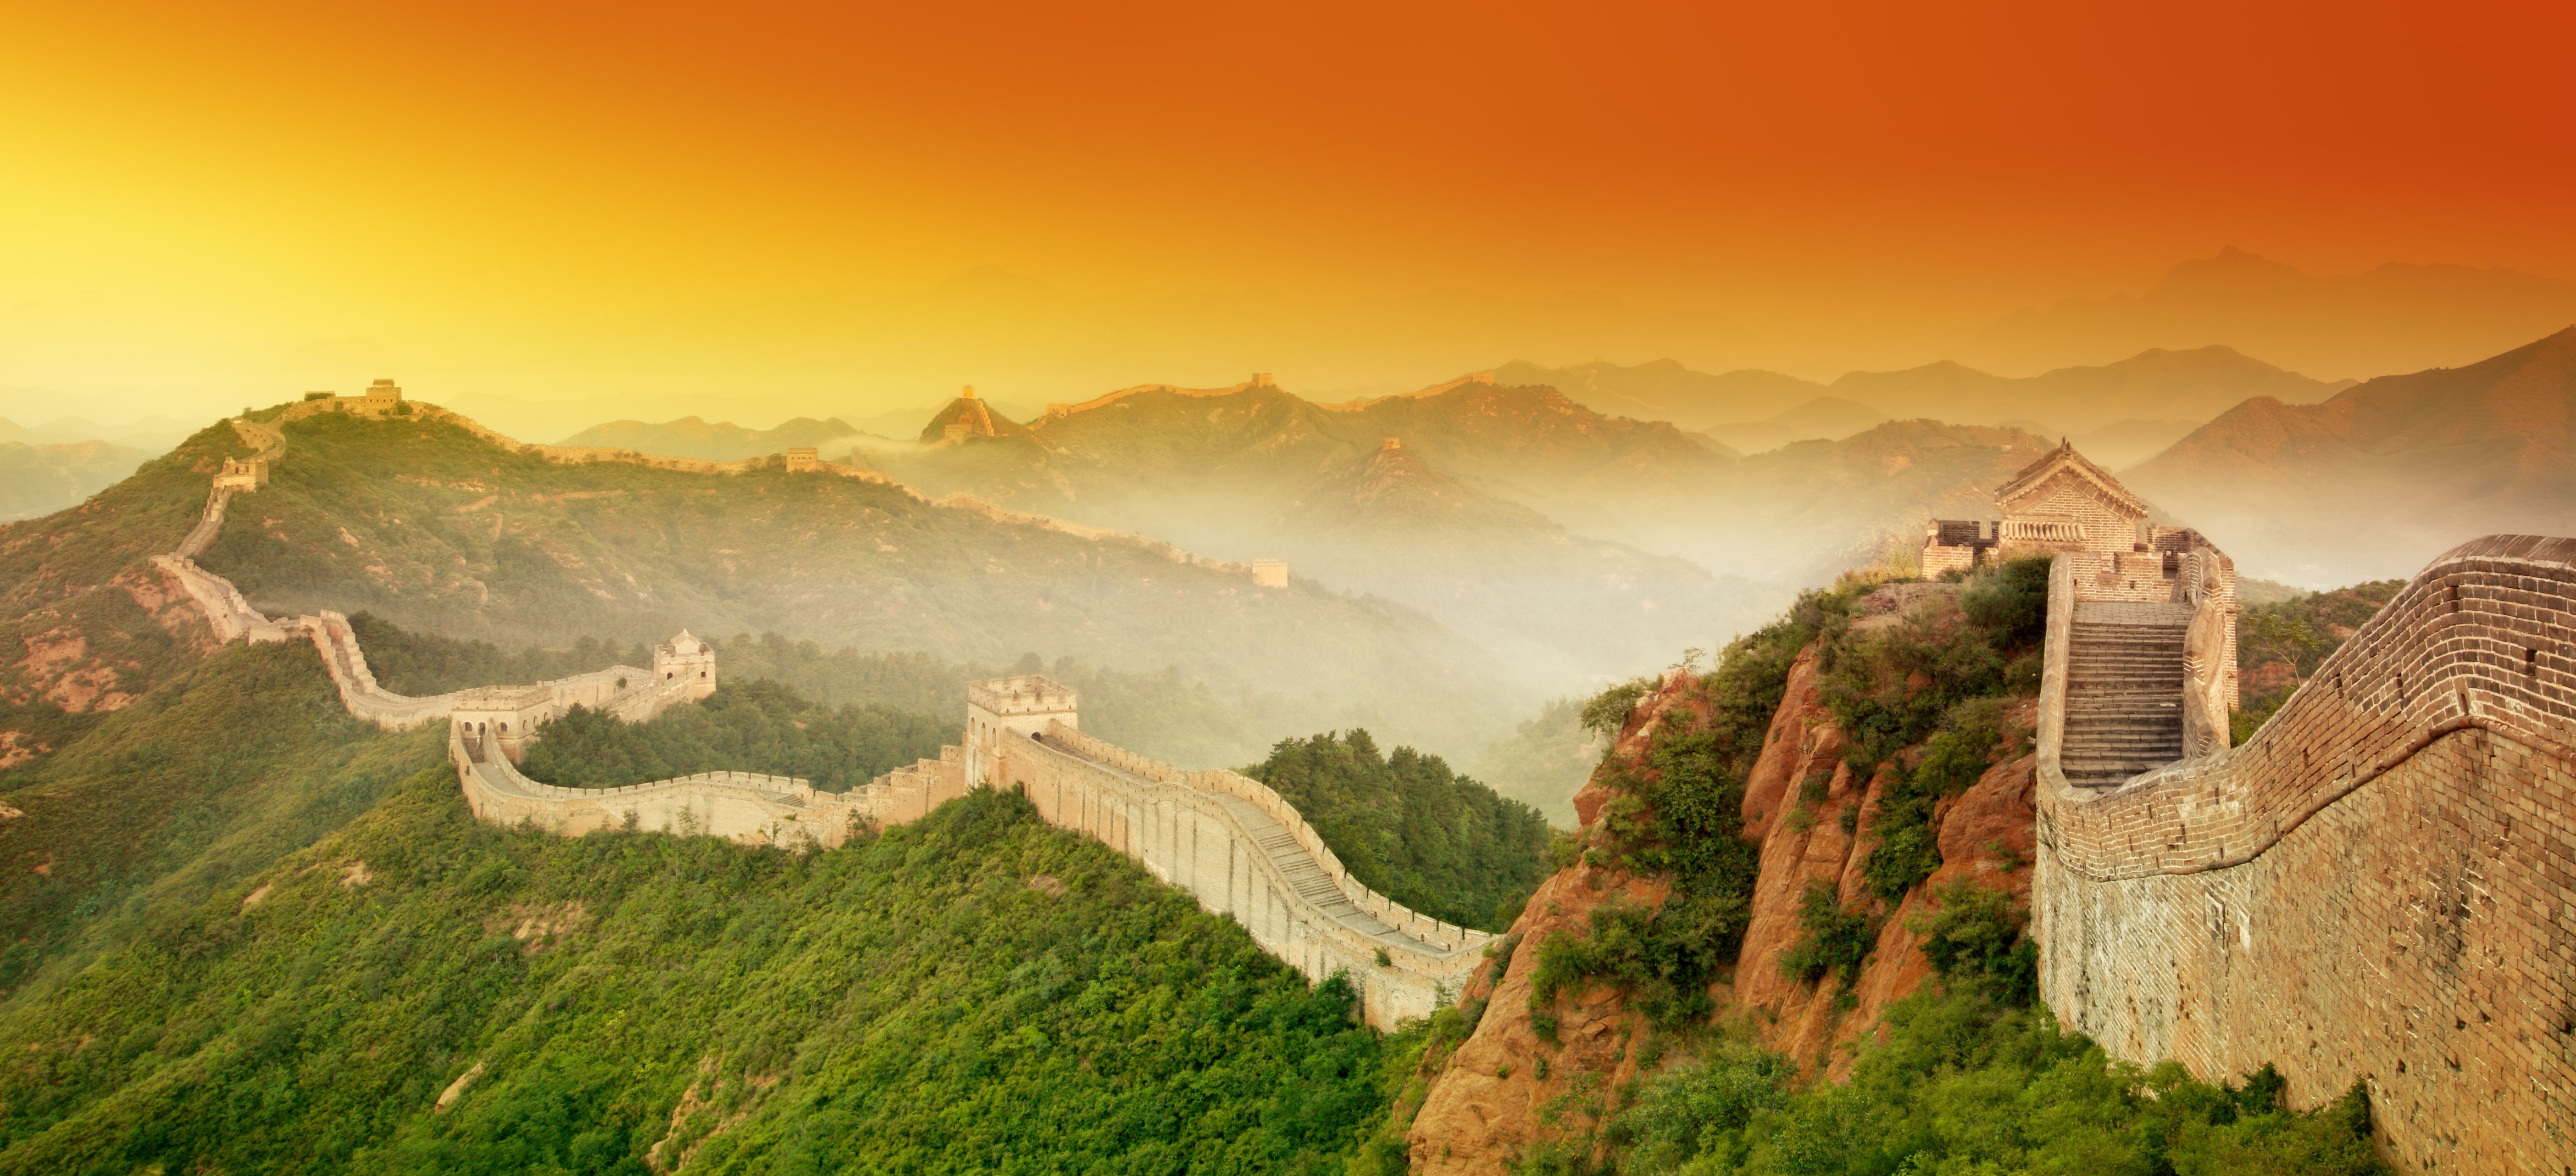 sunset at great wall china 旅行ツアー on great wall of china huanghuacheng id=71888